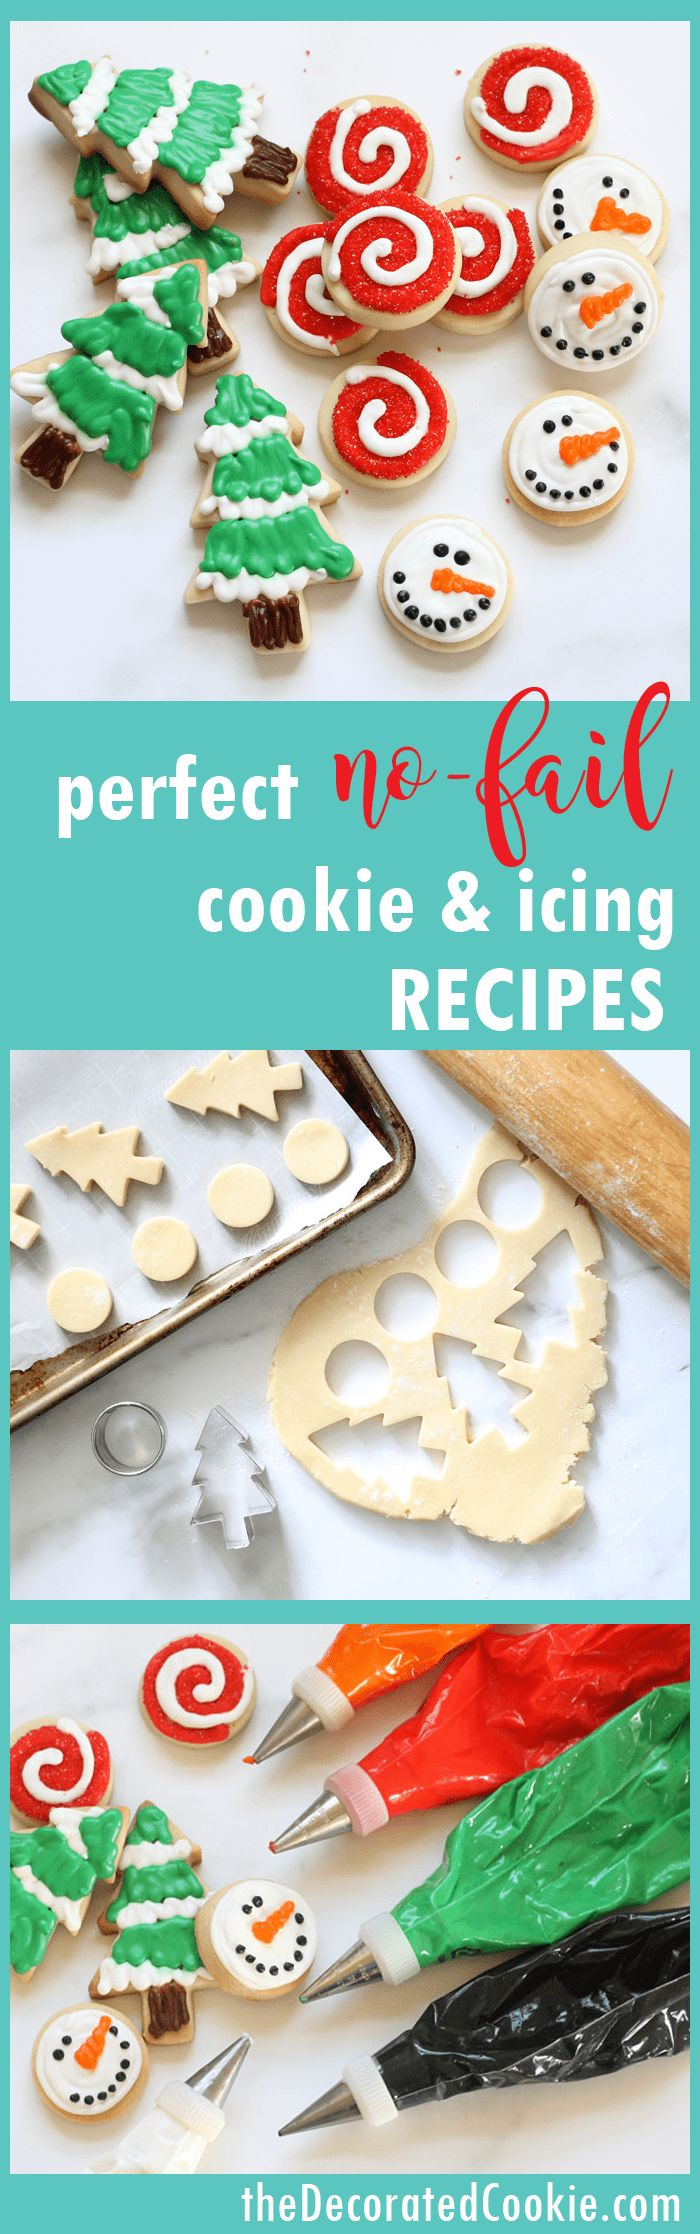 Make decorated Christmas cookies with these no-fail recipes for cut-out cookie dough and perfect royal icing. The recipes cut out and bake beautifully without changing shape, and the icing dries well enough for handling, freezing, and shipping, but it tastes delicious. VIDEO how-tos, PRINTABLE recipes. MAKE-AHEAD tips. HOW TO FREEZE cookies.